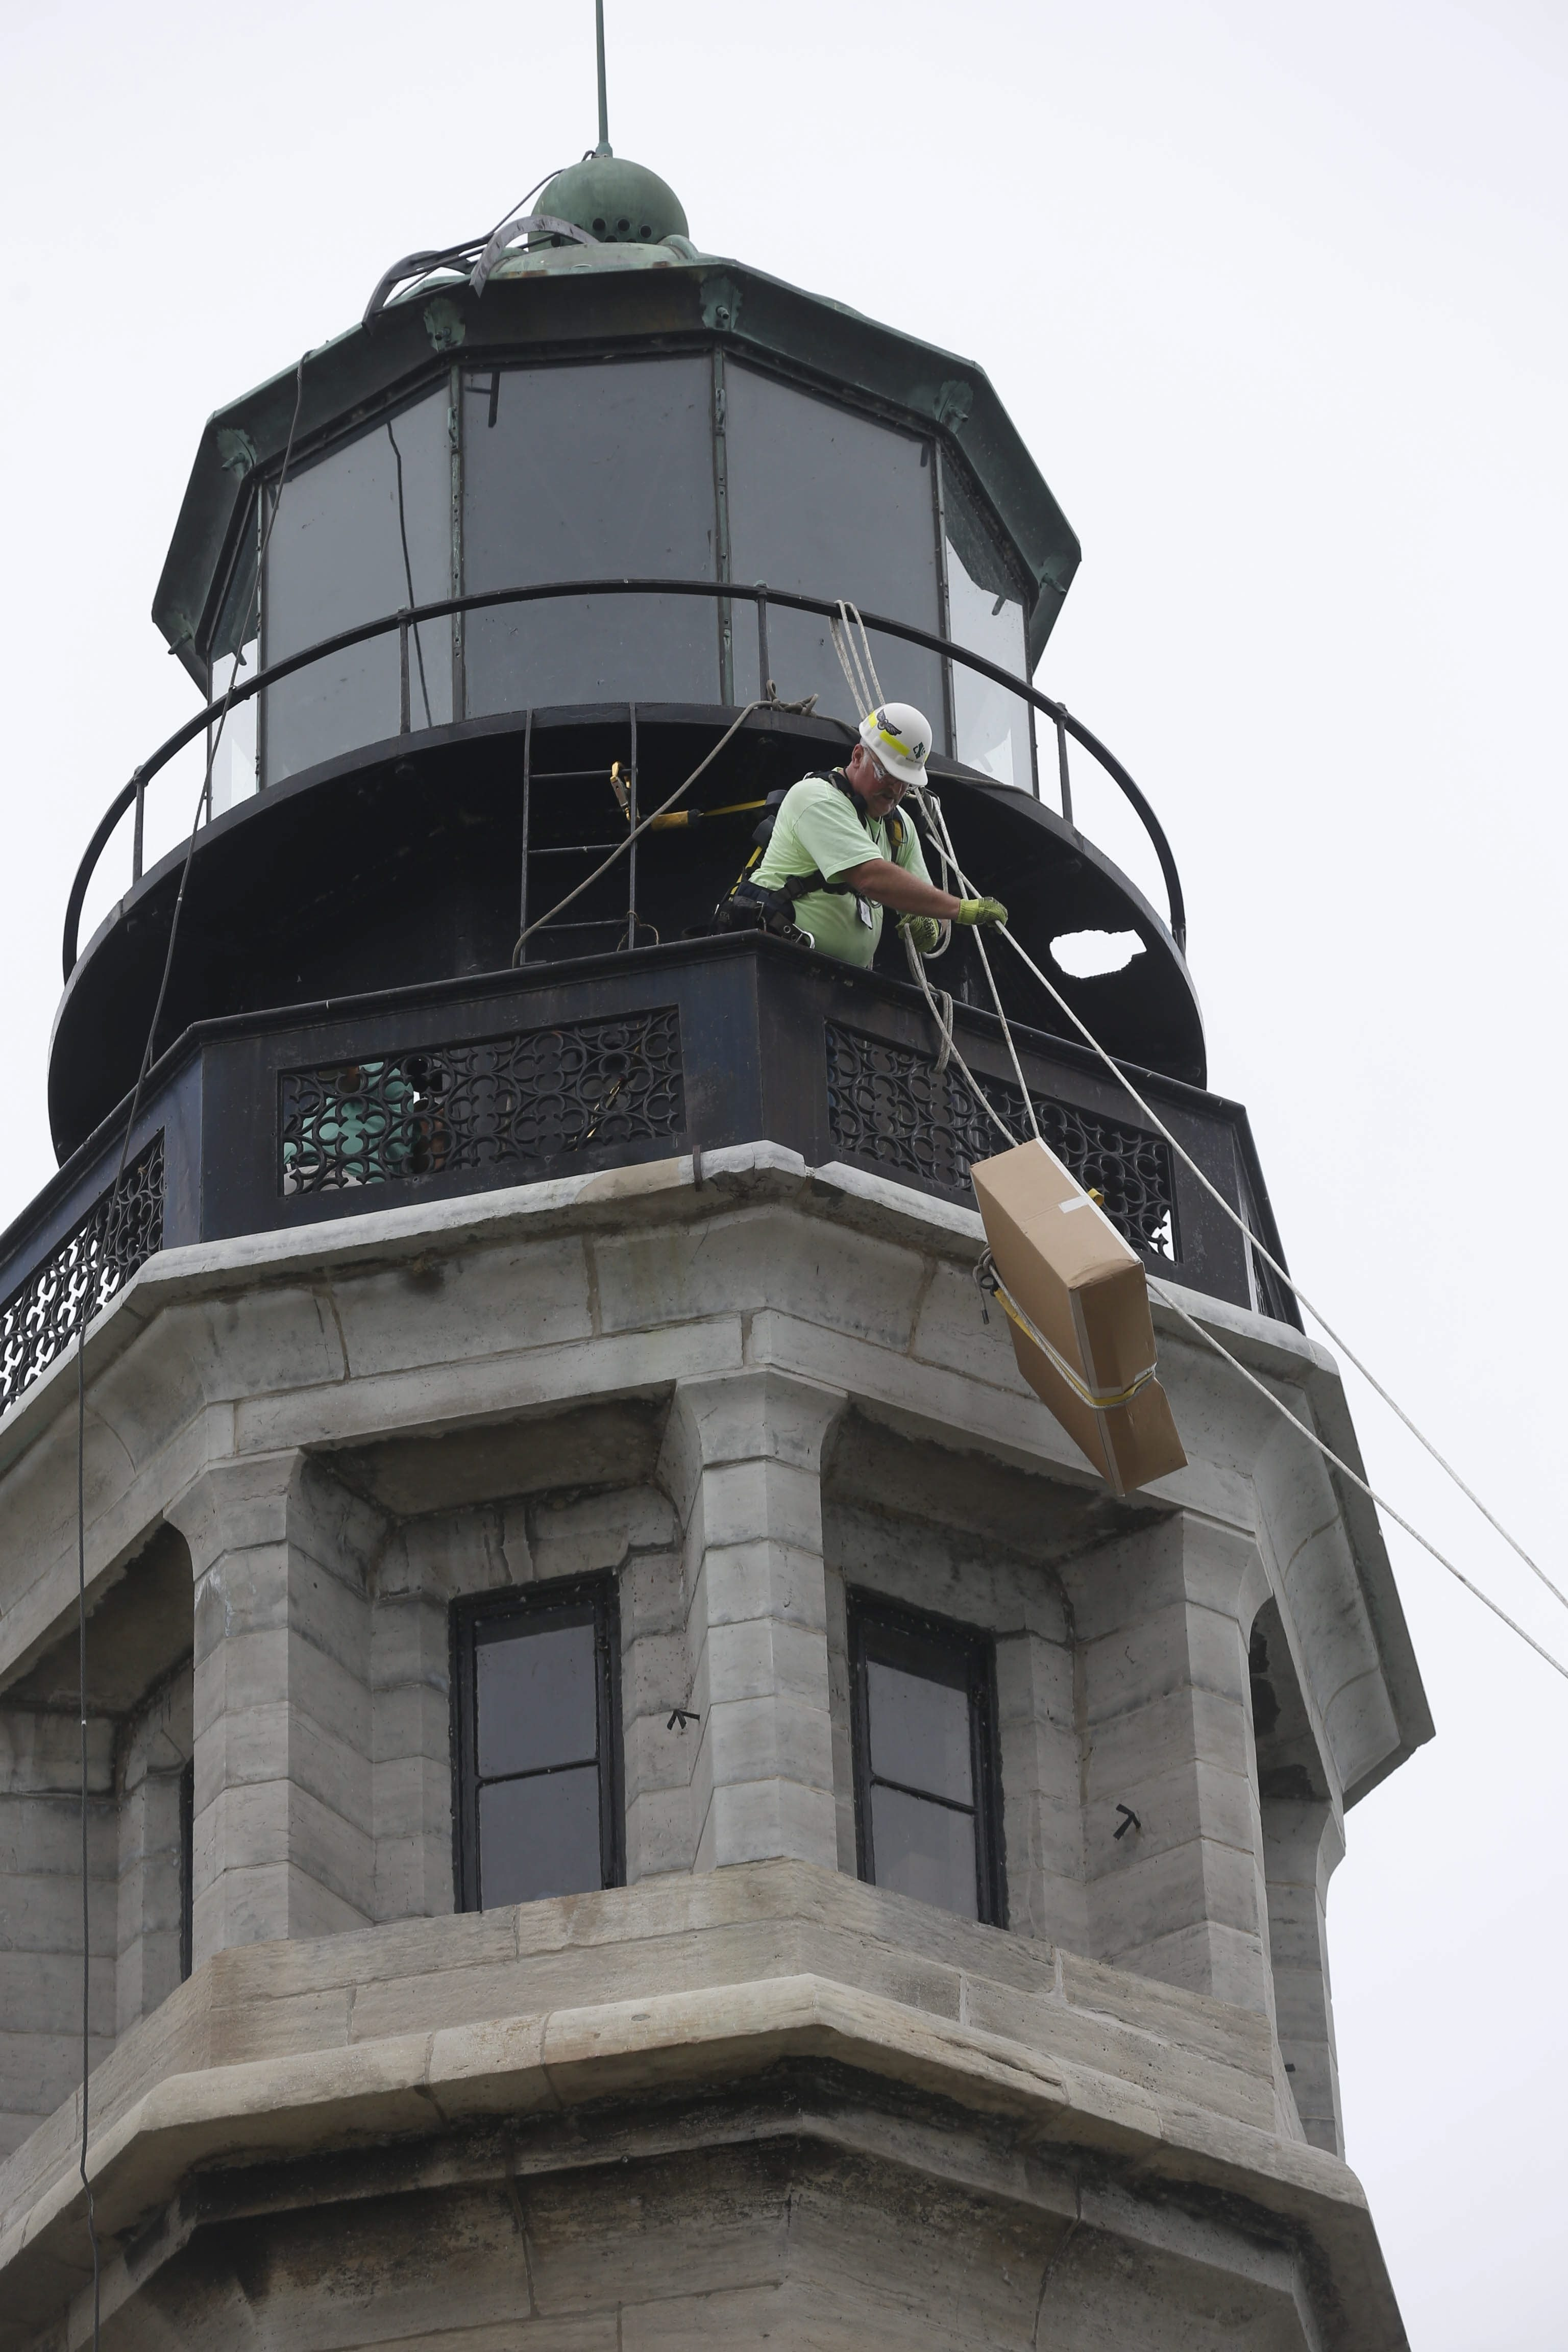 Rob Vizza, with International Chimney Corp., uses a block-and-tackle system to hoist components up to the Buffalo Light on Buffalo on Monday.